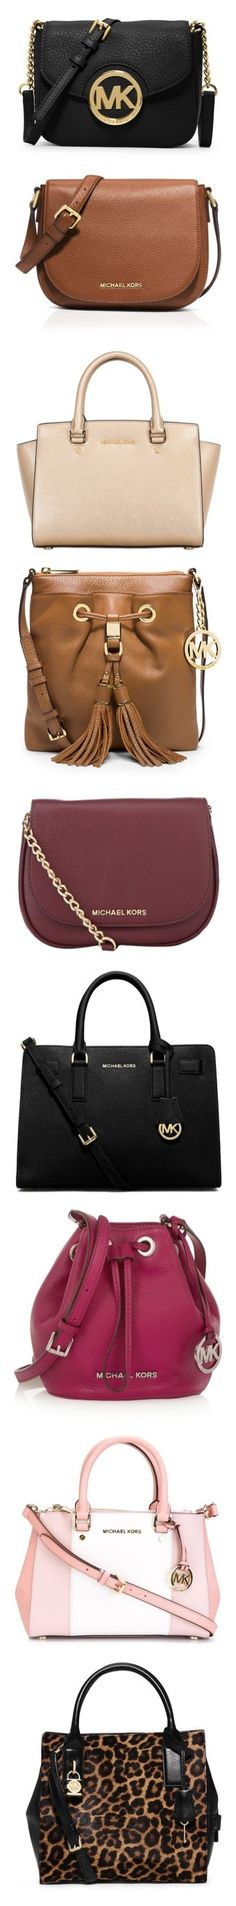 """Michael Kors Collection"" by eltrada on Polyvore featuring bags, handbags, shoulder bags, purses, accessories, clutches, michael kors, black, black crossbody purse and black cross body purse"